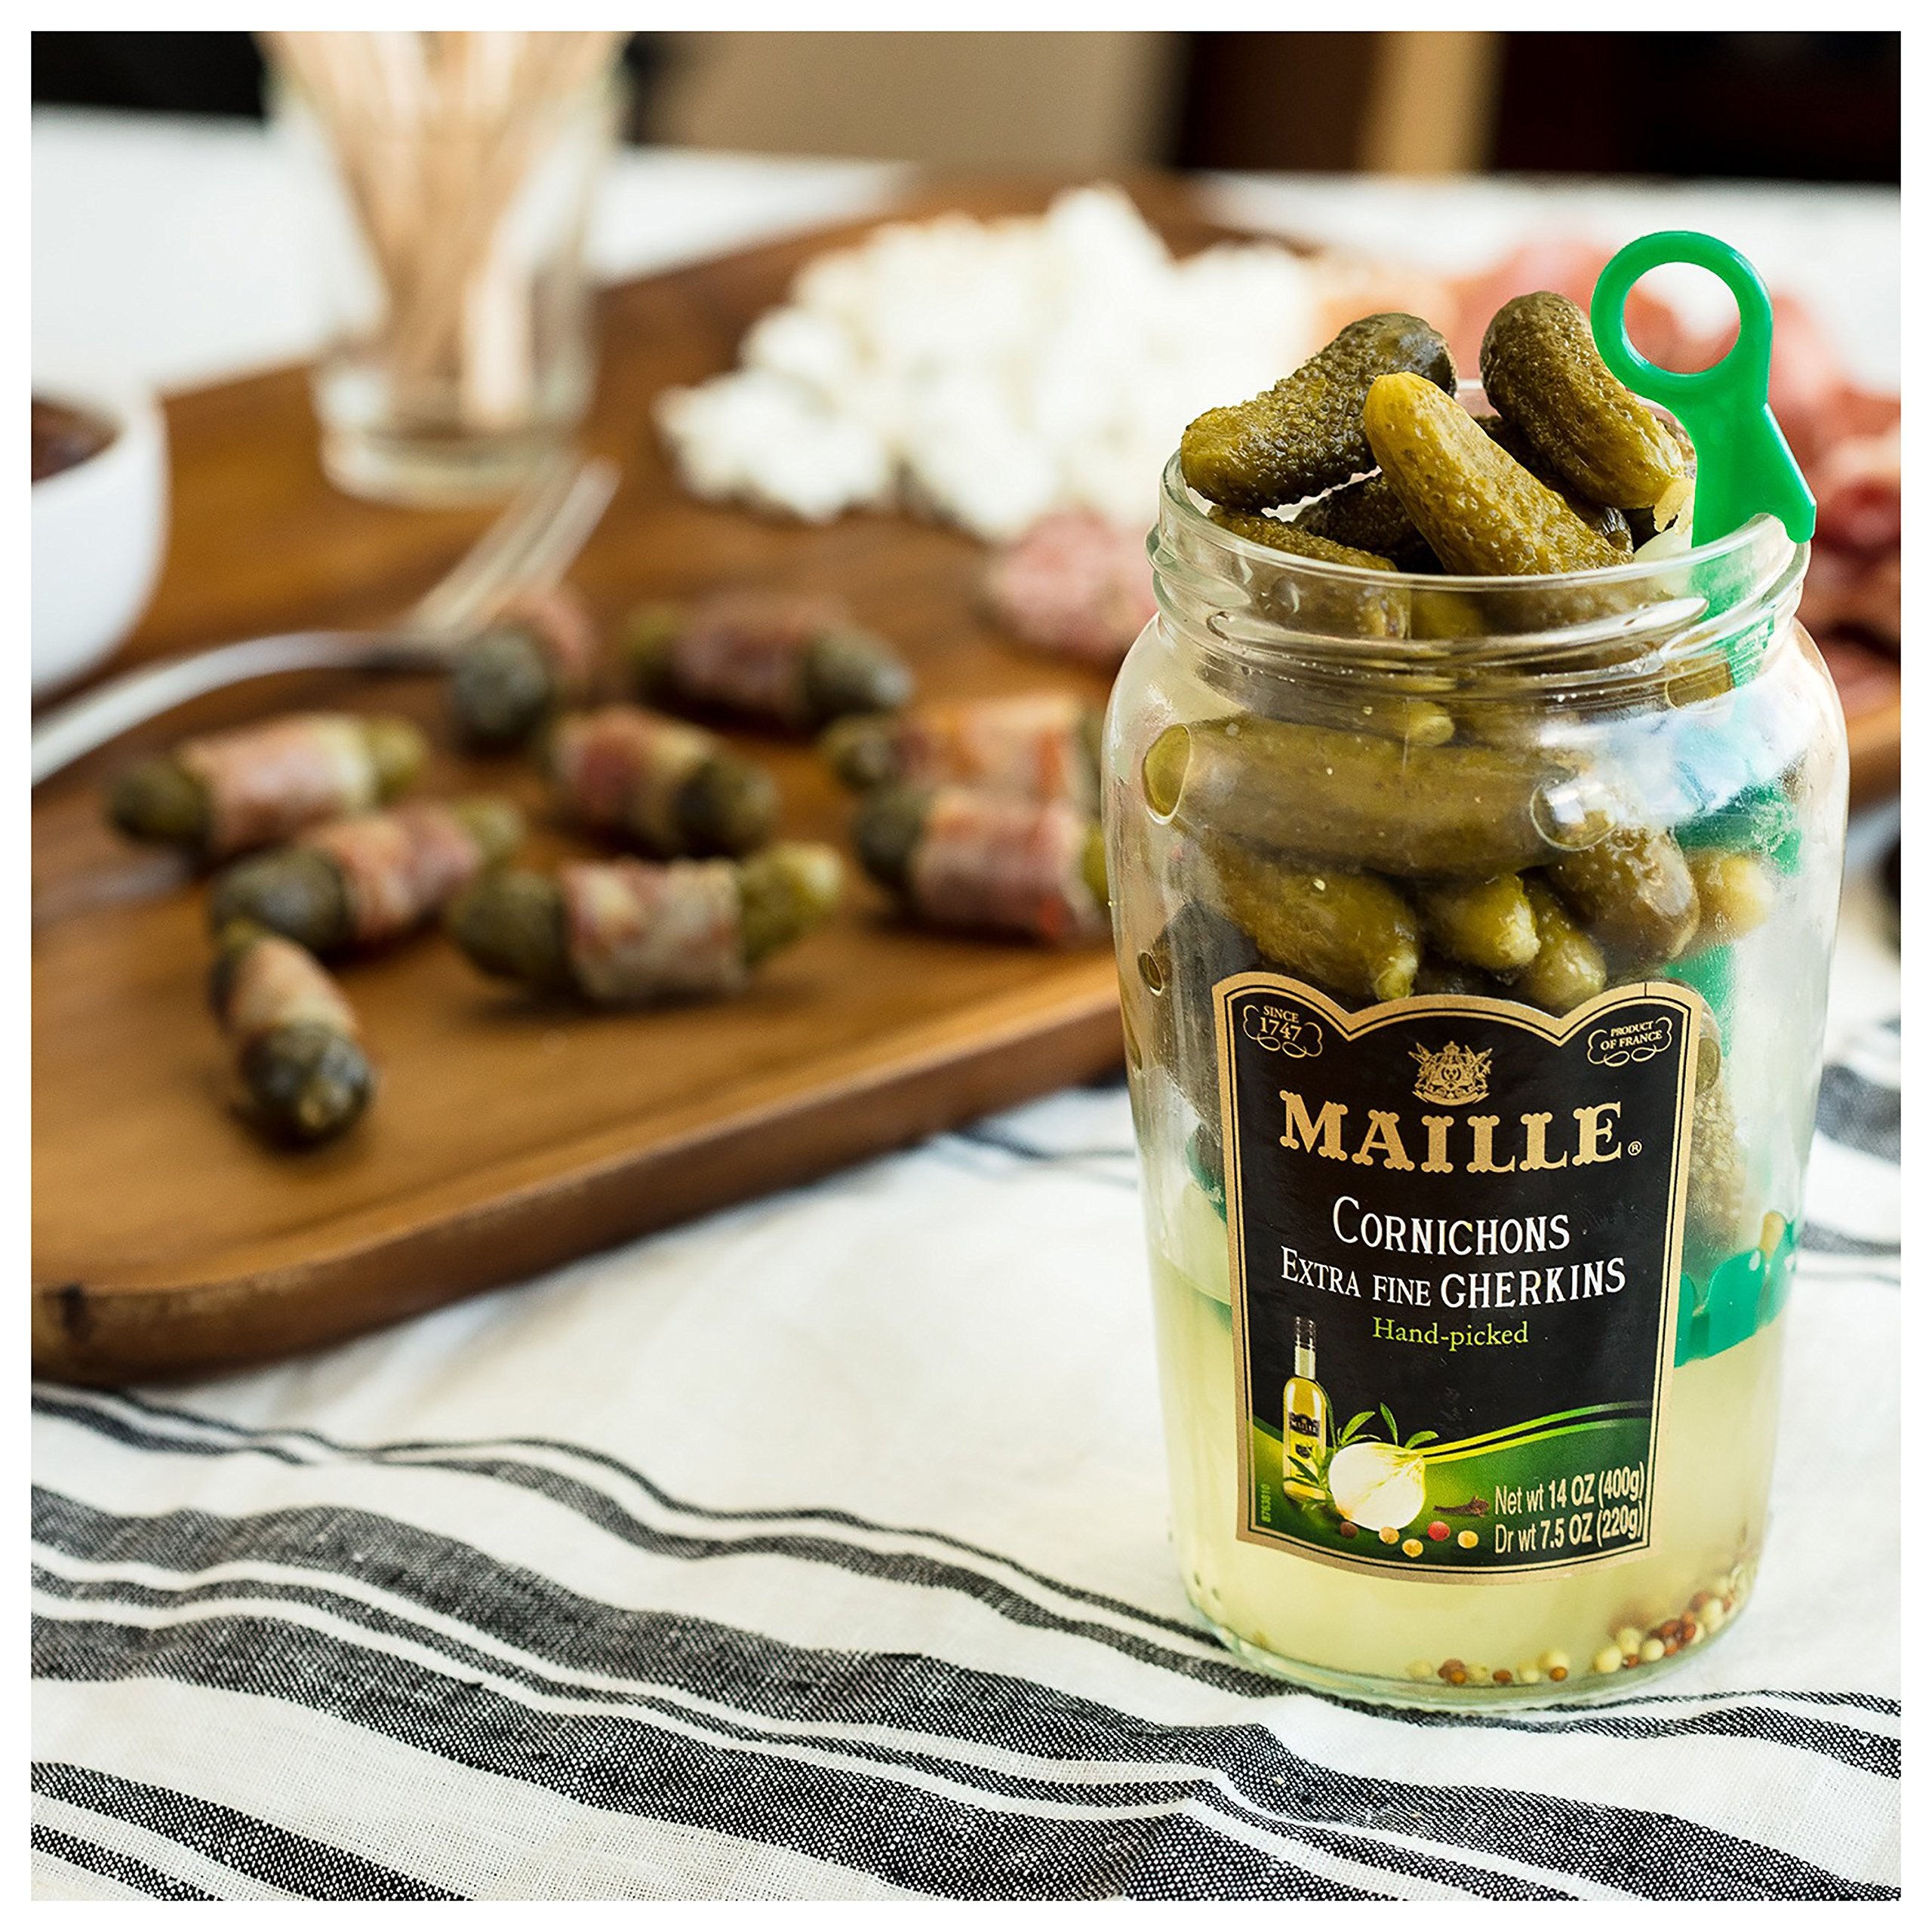 Maille Pickles, Cornichons Original, 13.5 oz, Pack of 12 by Maille (Image #4)